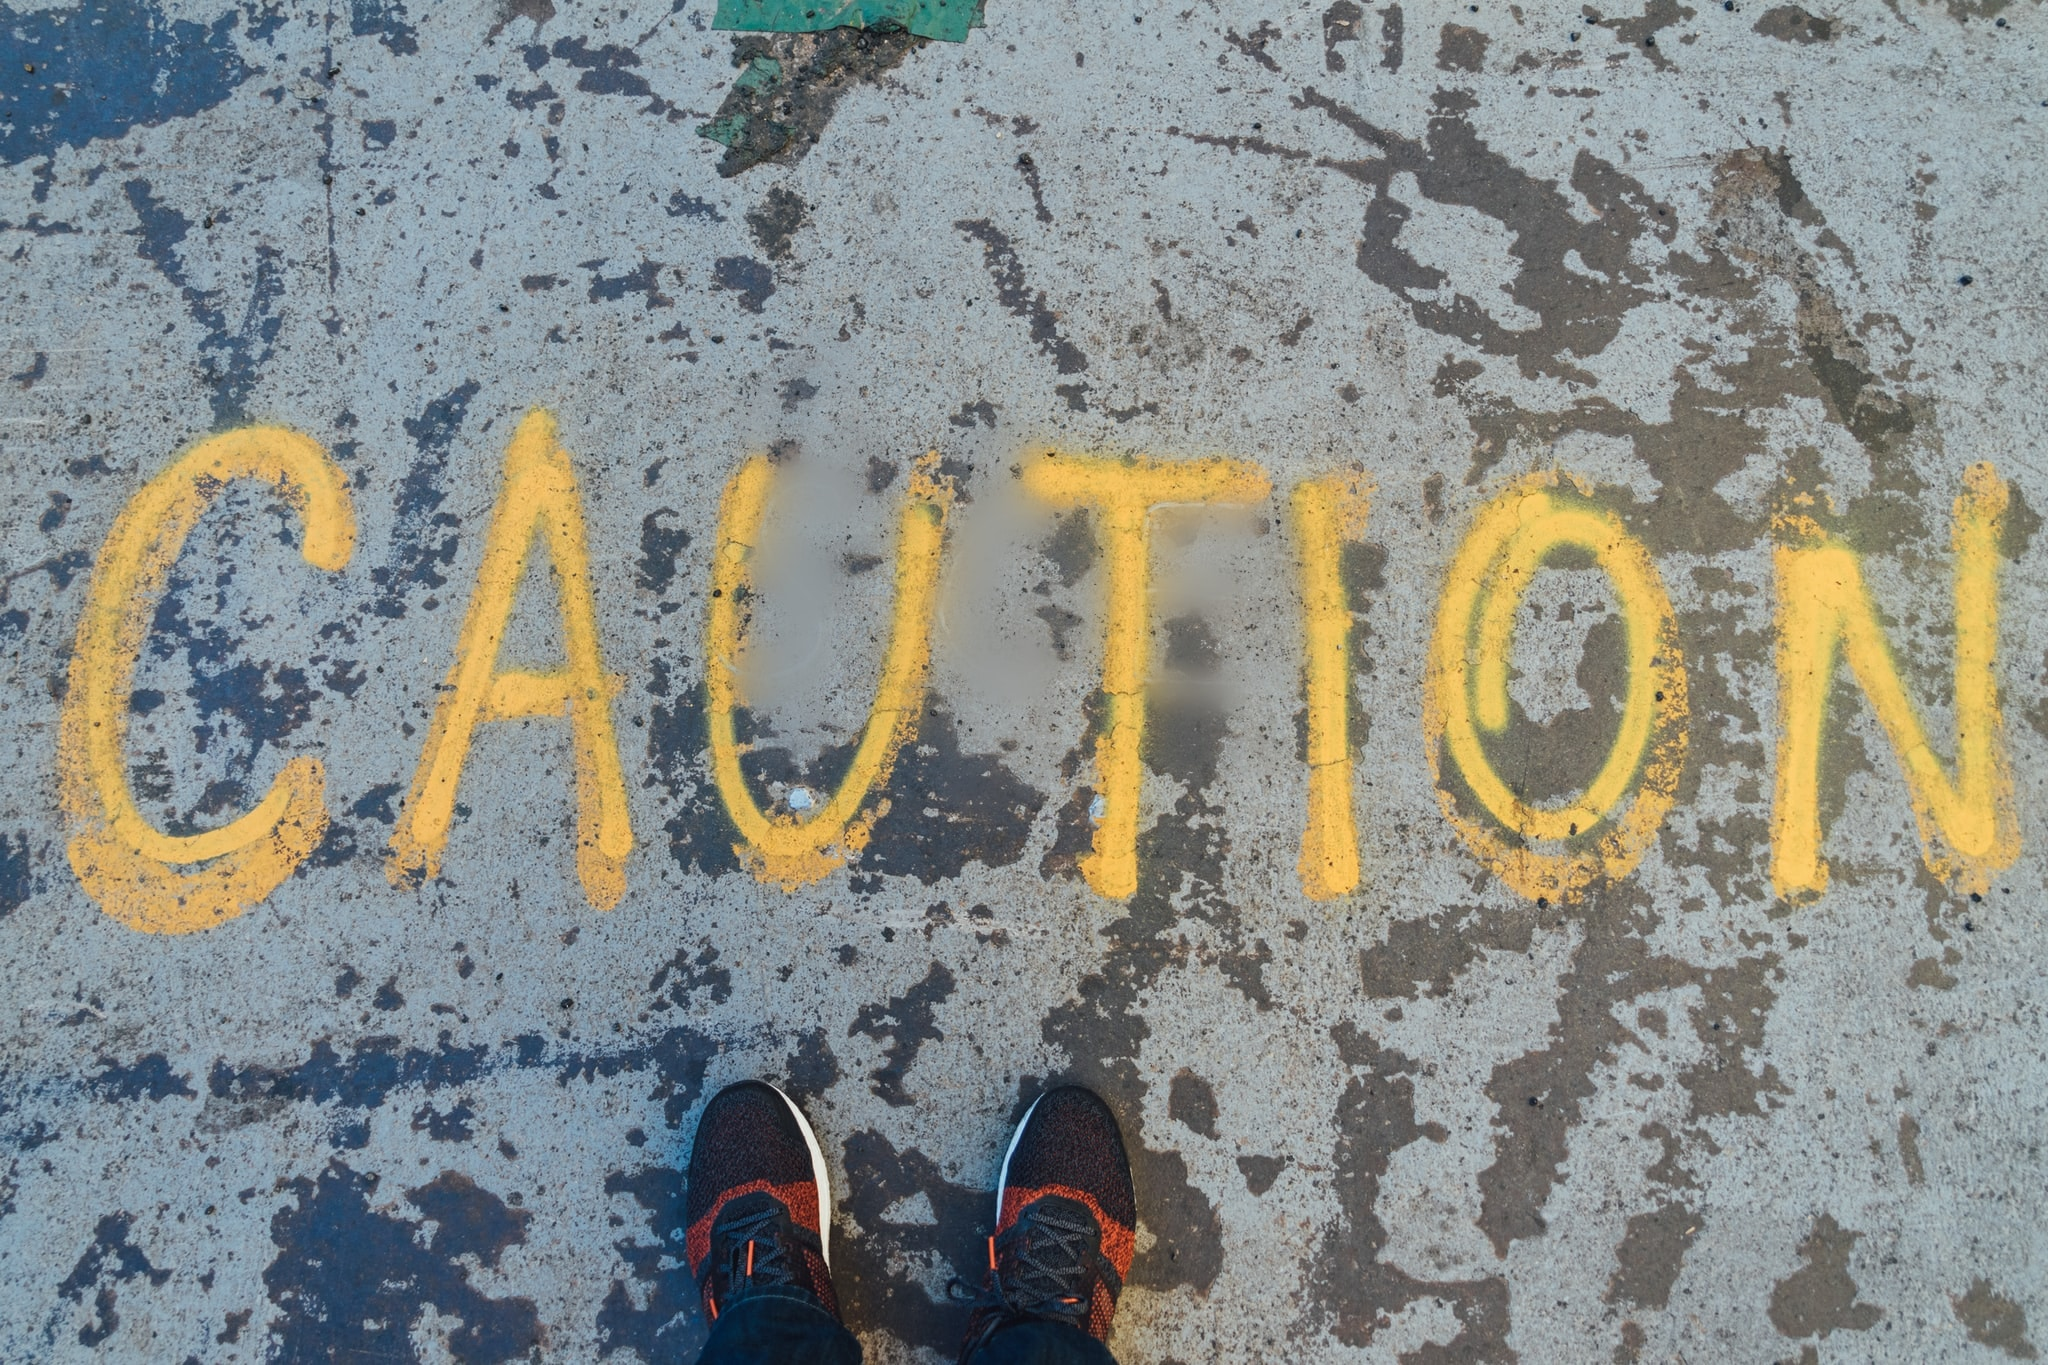 the word Caution spray painted on a concrete floor